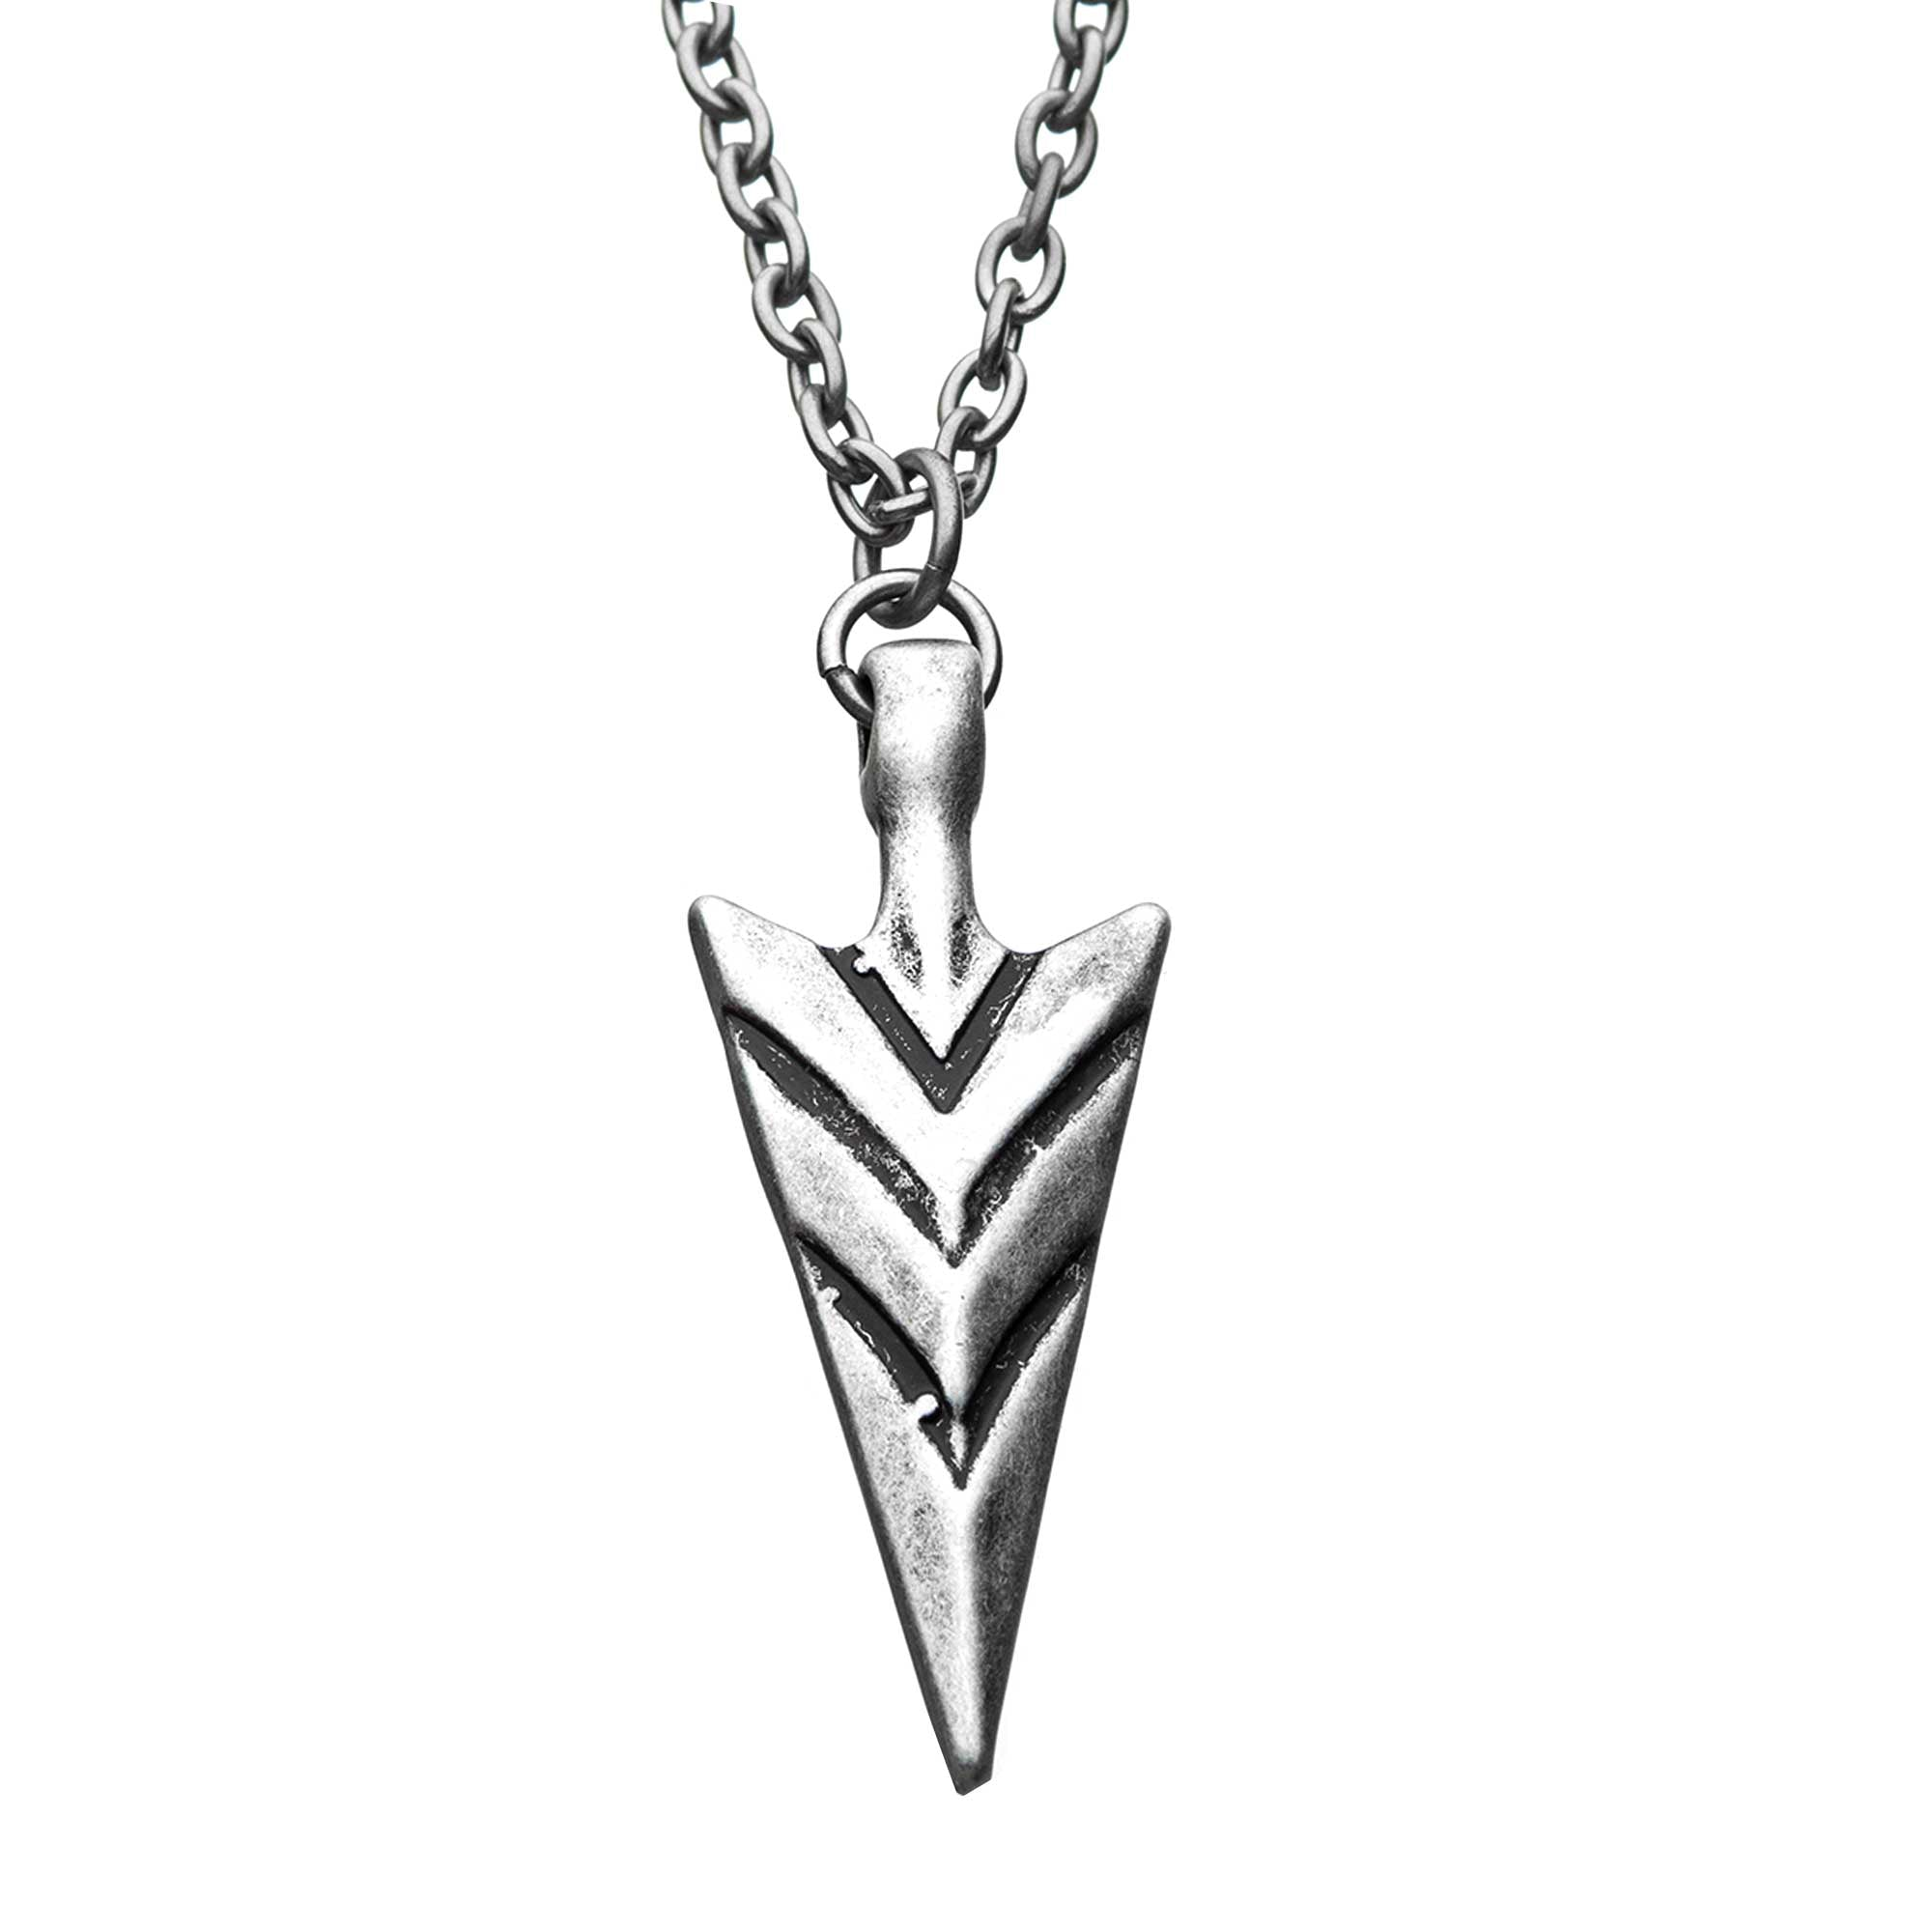 Stainless Steel and Antiqued Finish Arrowhead Pendant with Chain